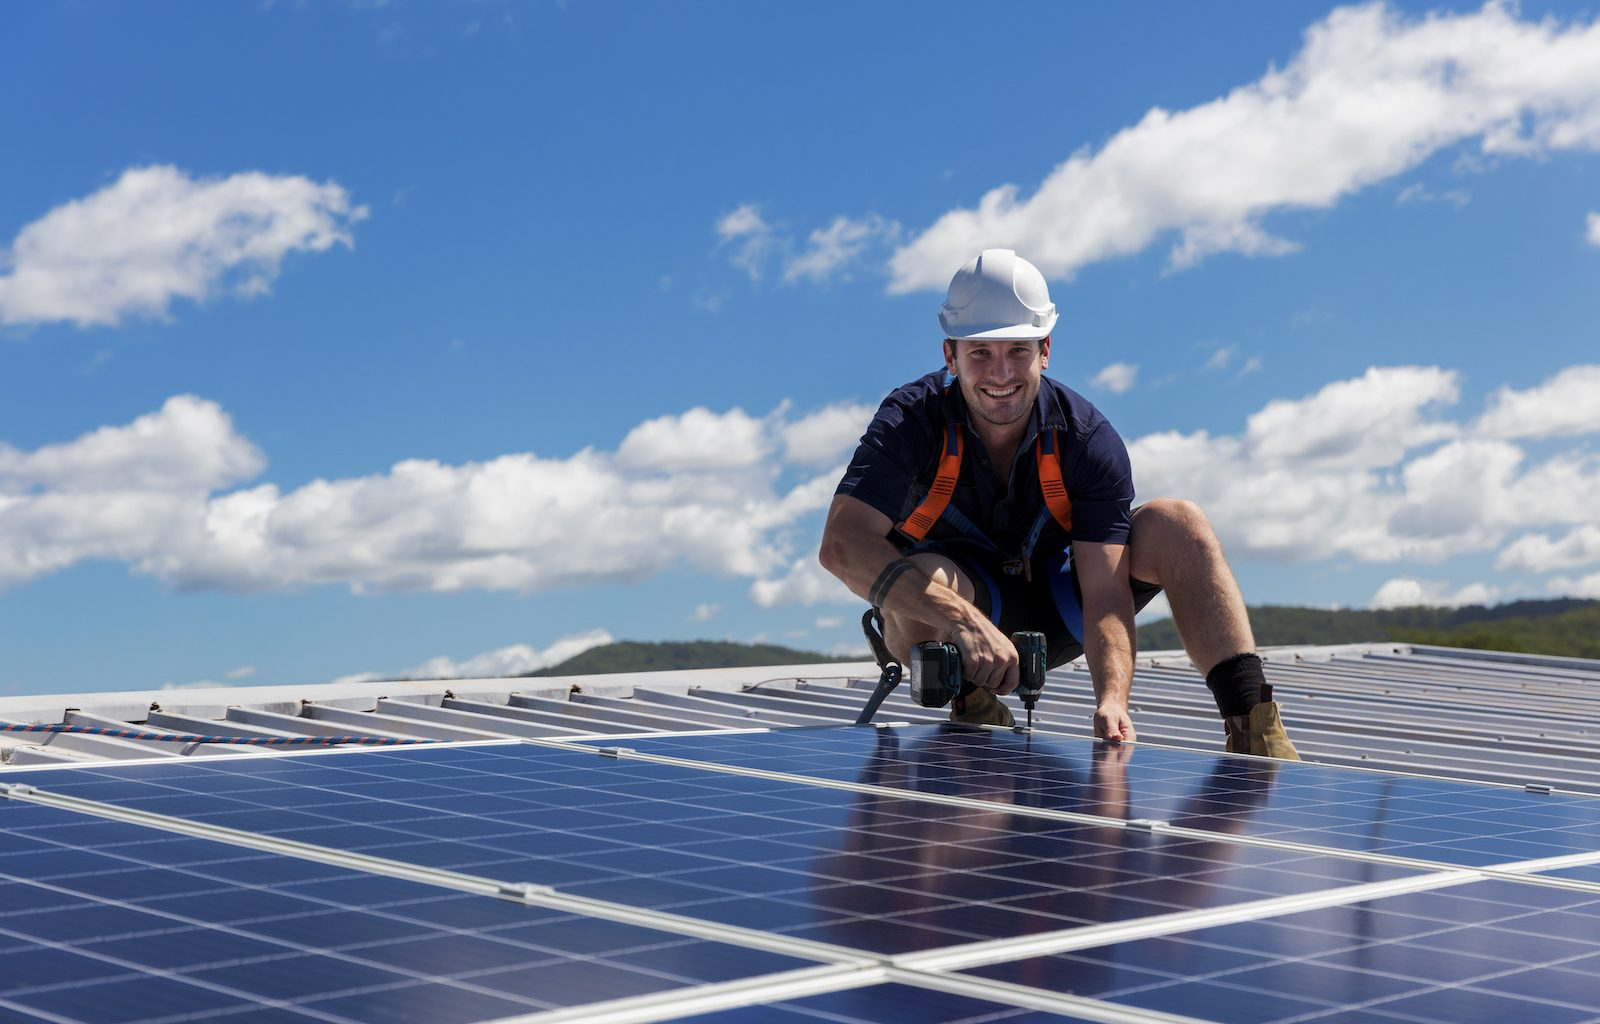 How do solar panels generate electricity